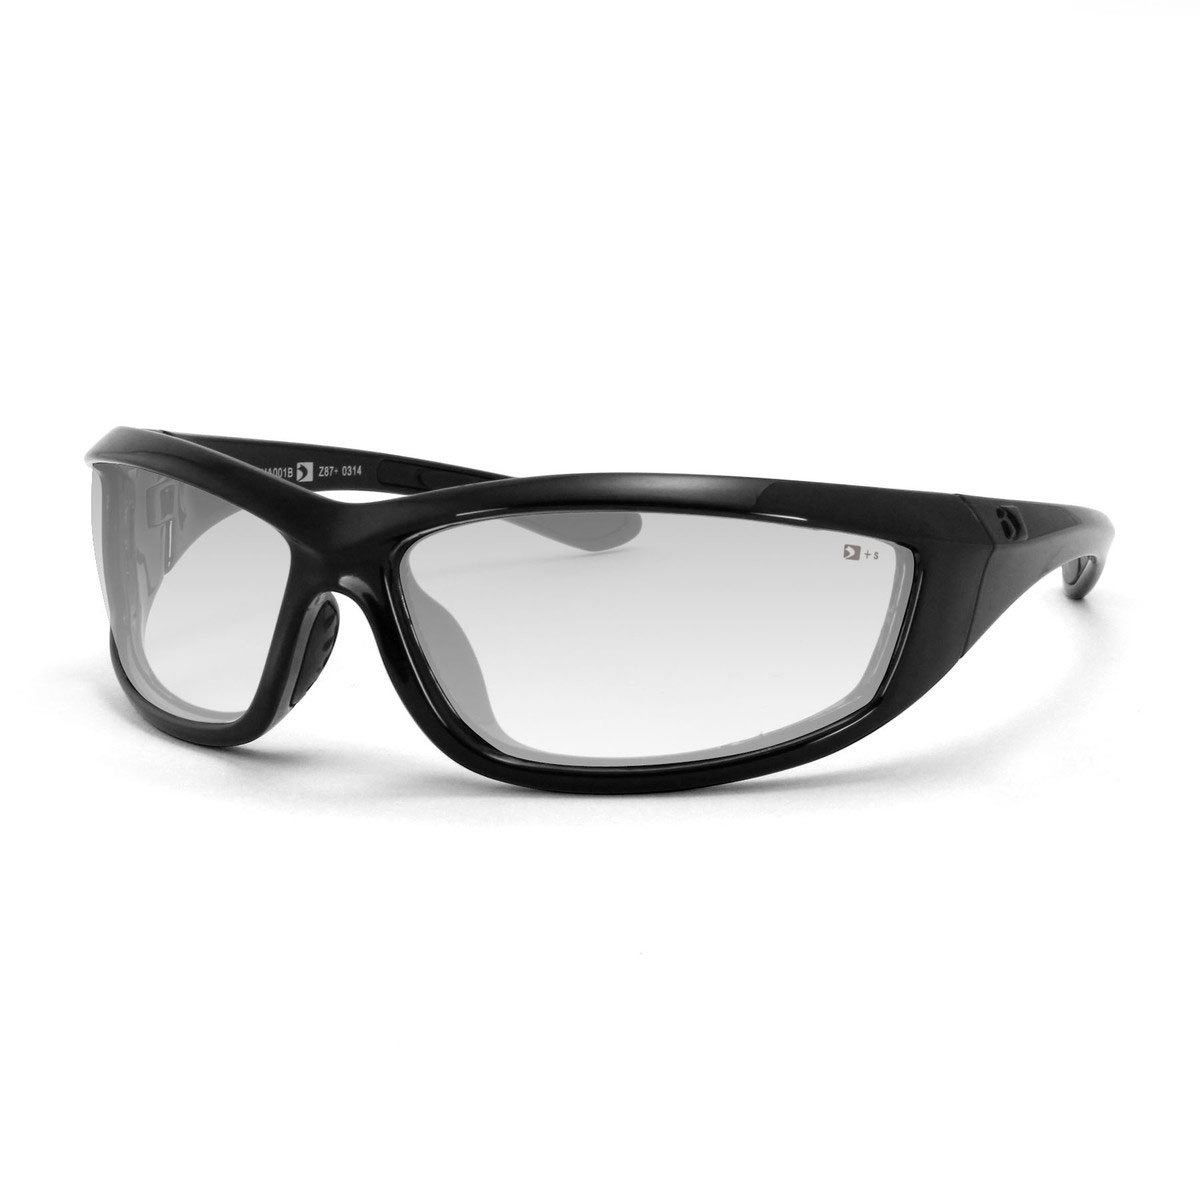 Bobster Charger Sunglasses with Clear Lenses